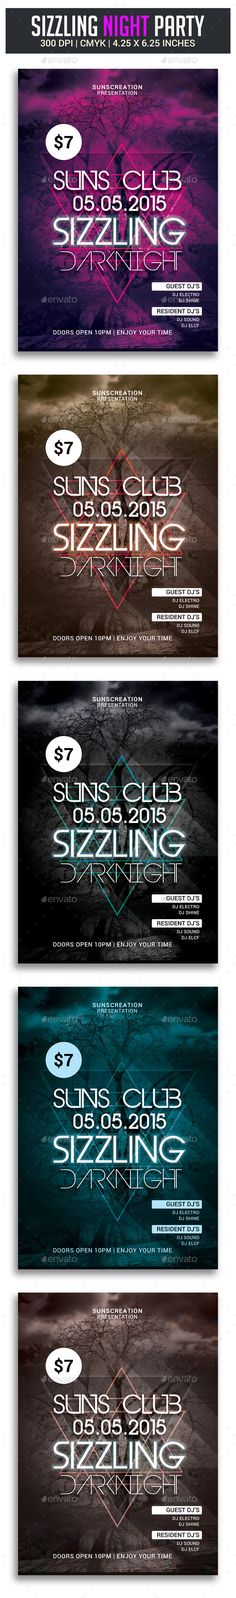 Sizzling Darknight Party Flyer